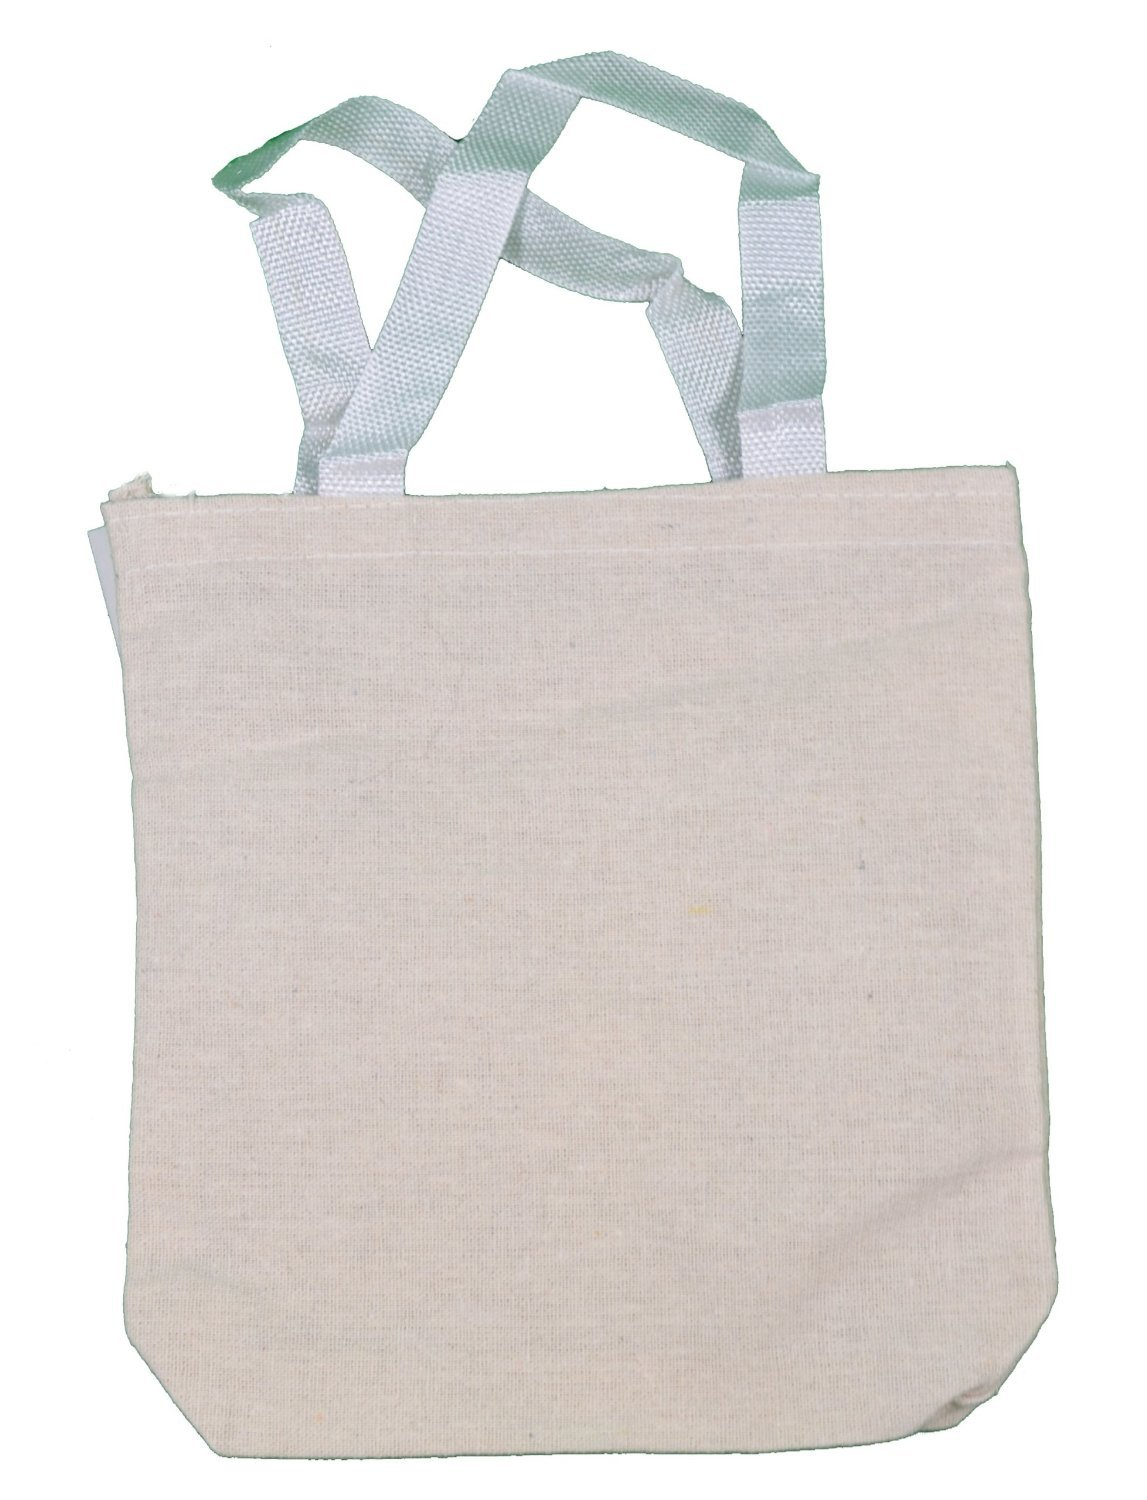 Tote bag in bulk - Amazon Com Undecorated Natural Canvas Tote Bags 1 Dozen Bulk Toy By Fun Express Kitchen Dining